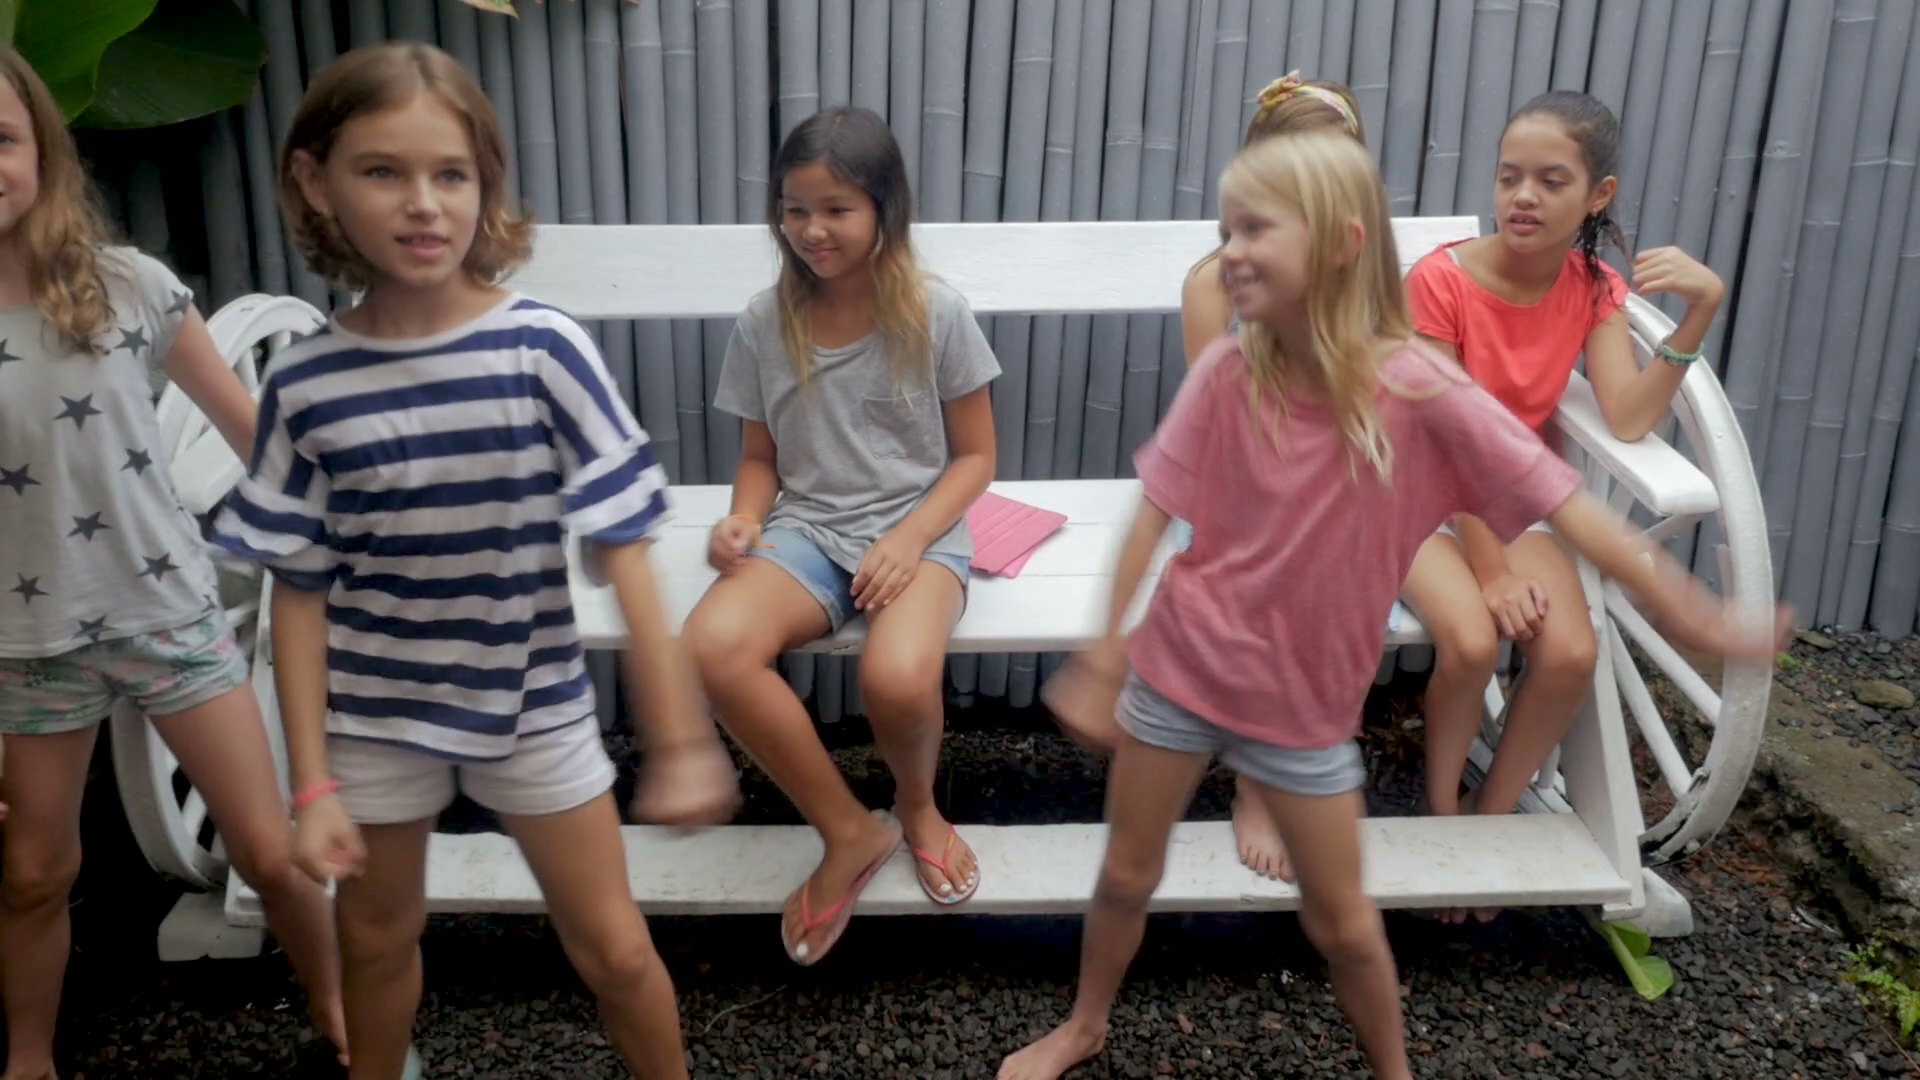 Diverse group of young mixed ethnic girls ages 7 - 12 getting off a bench to join their friend dancing in slow motion Stock Video Footage - Storyblocks